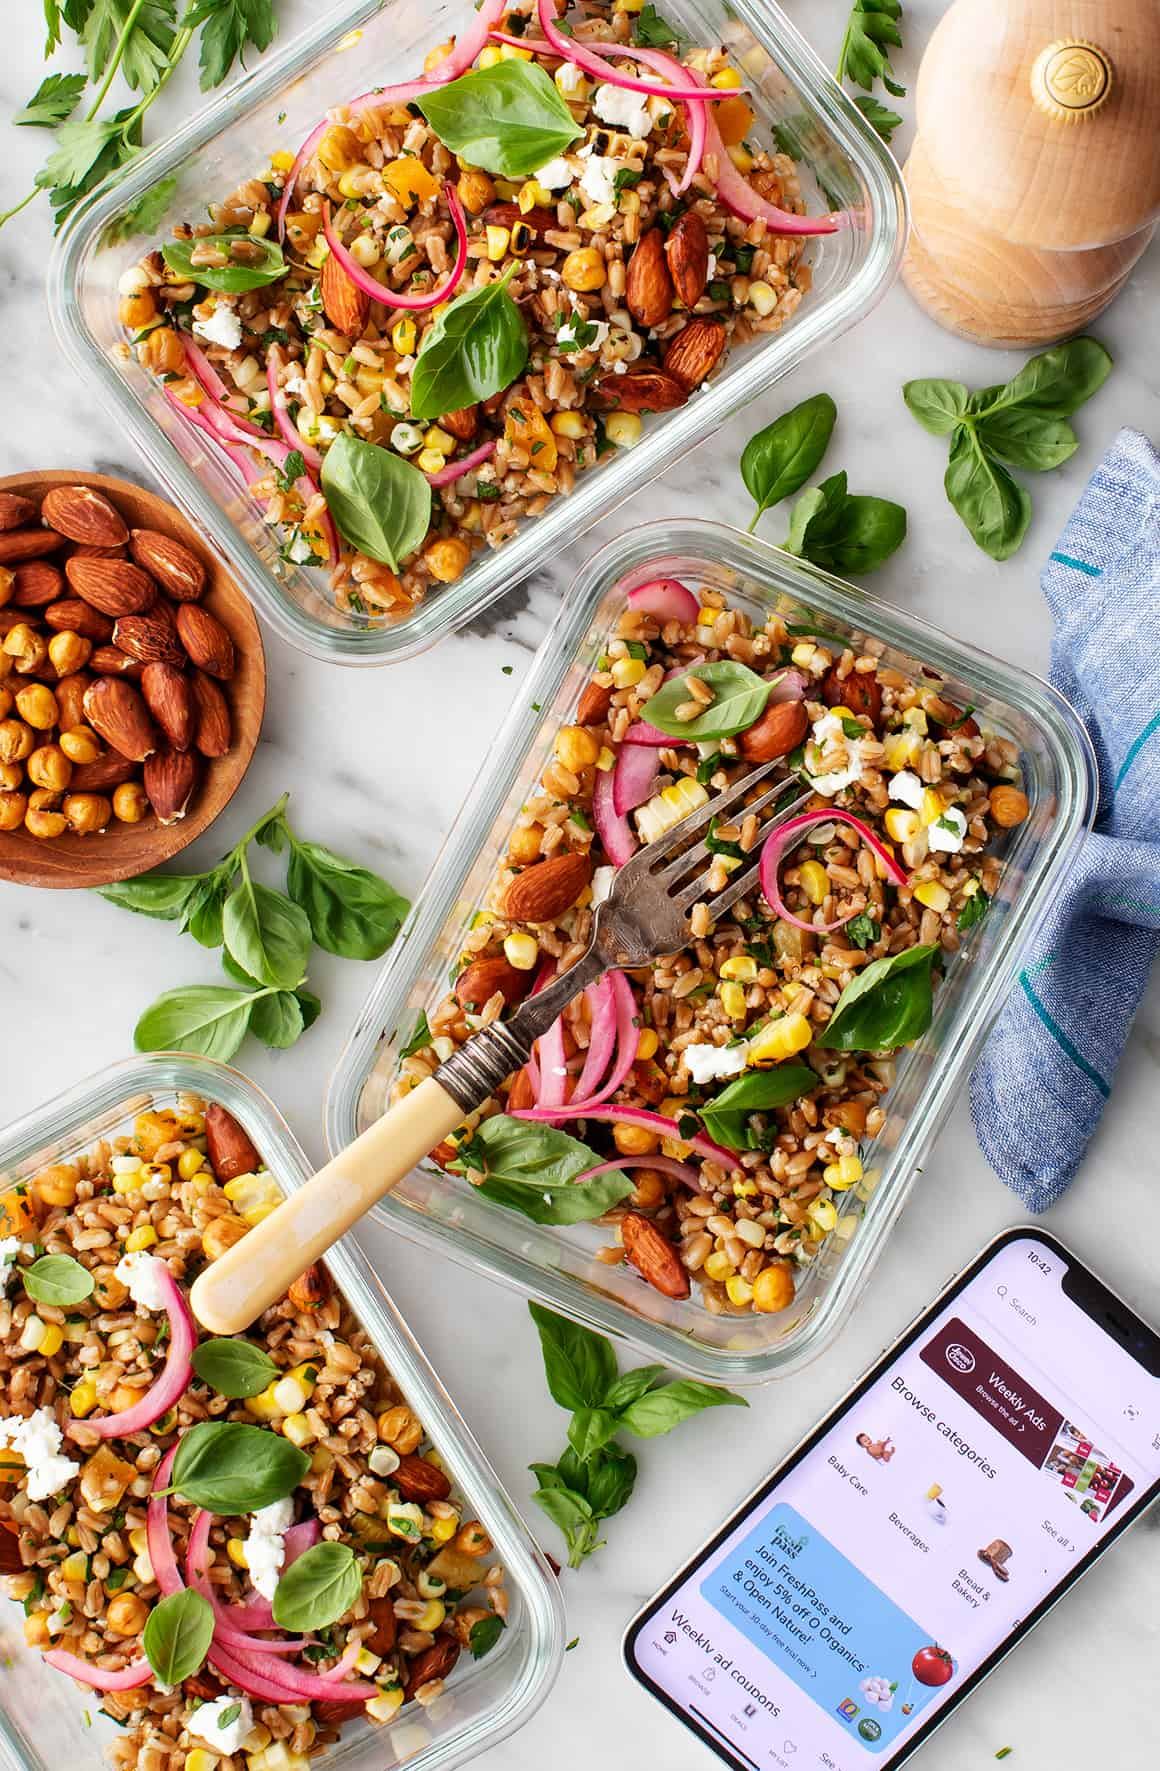 Grain salad in meal prep containers